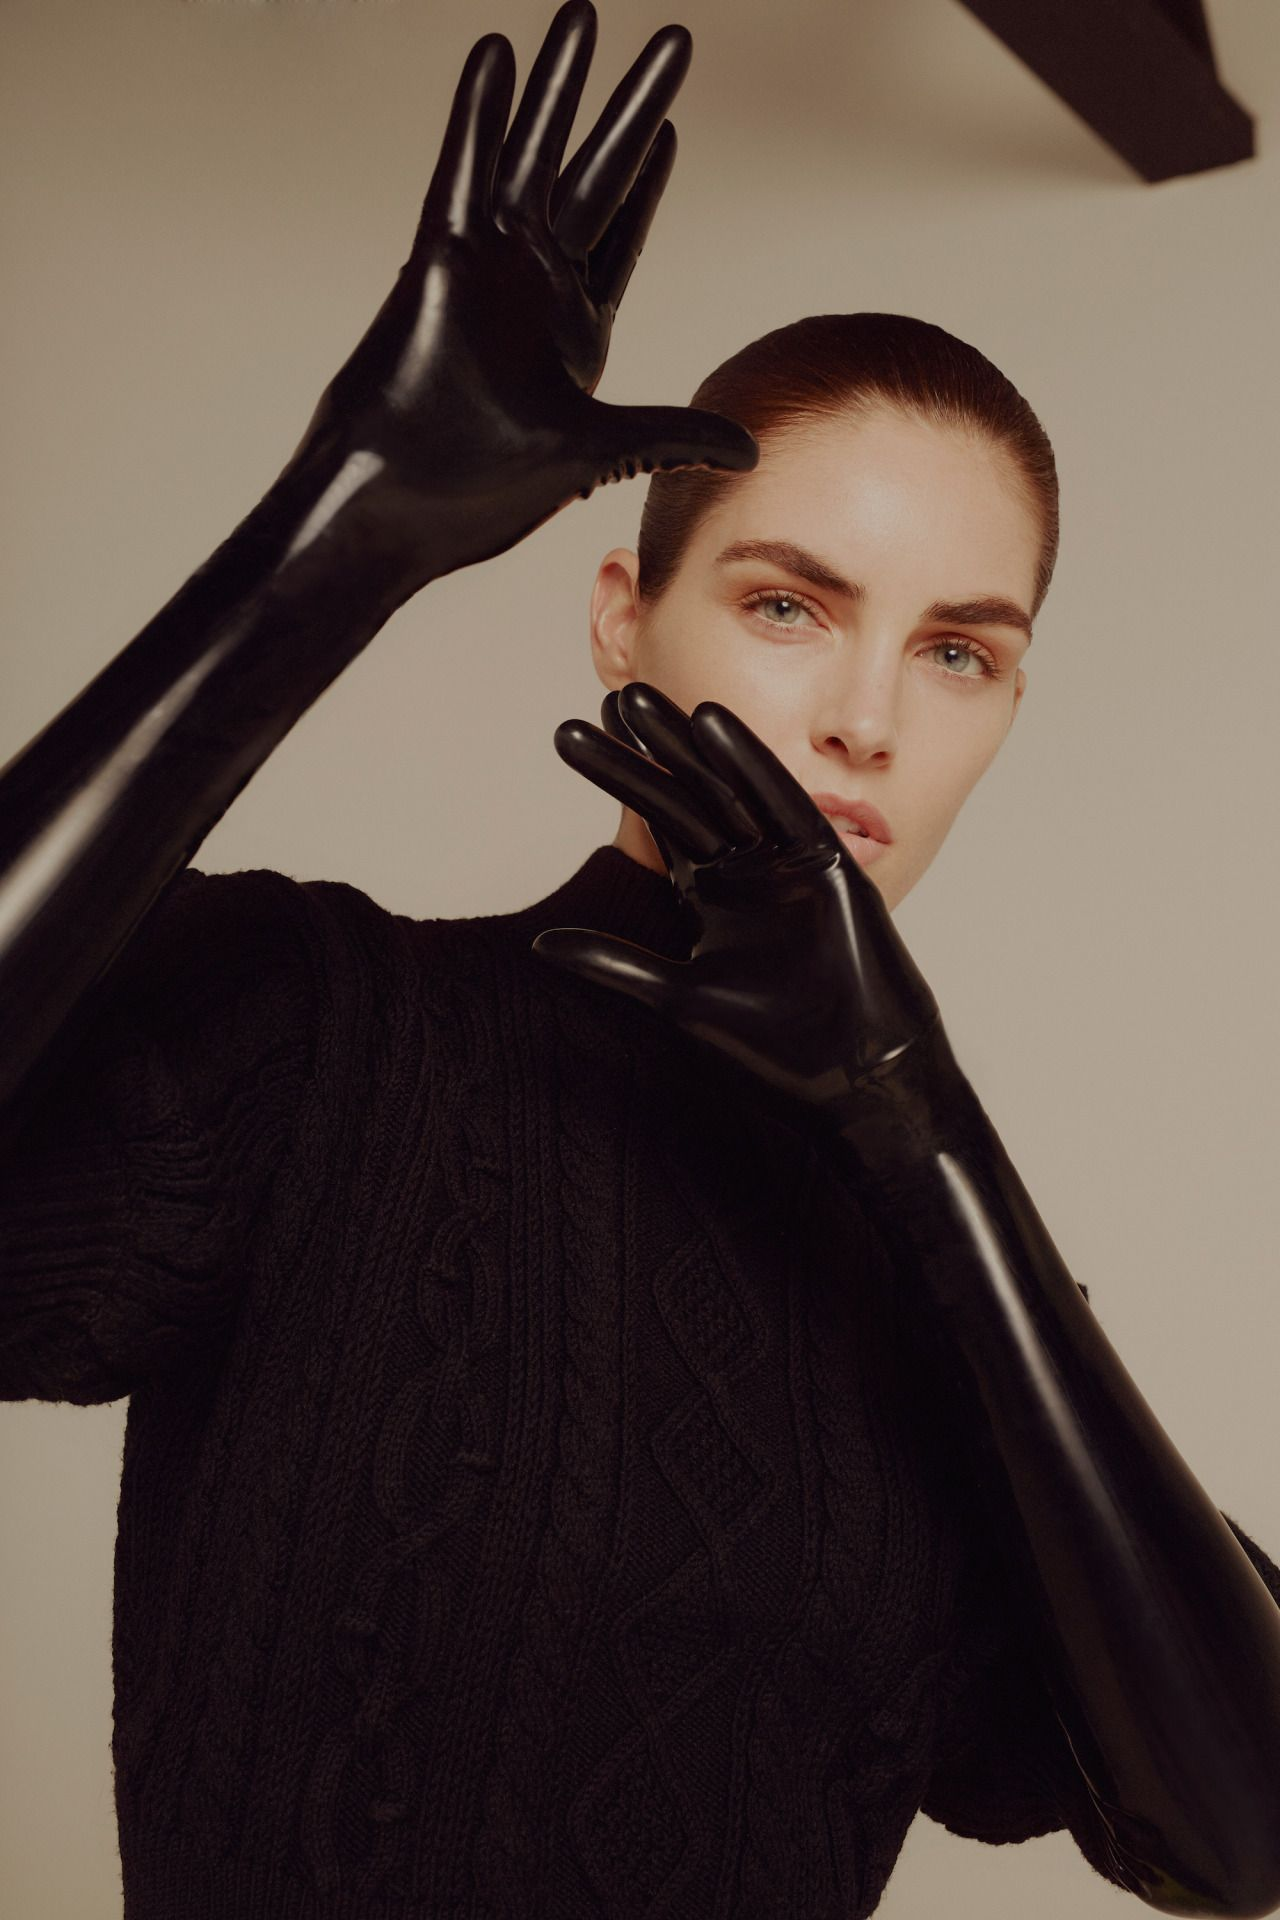 Hilary Rhoda USA 	2 	2012-2013